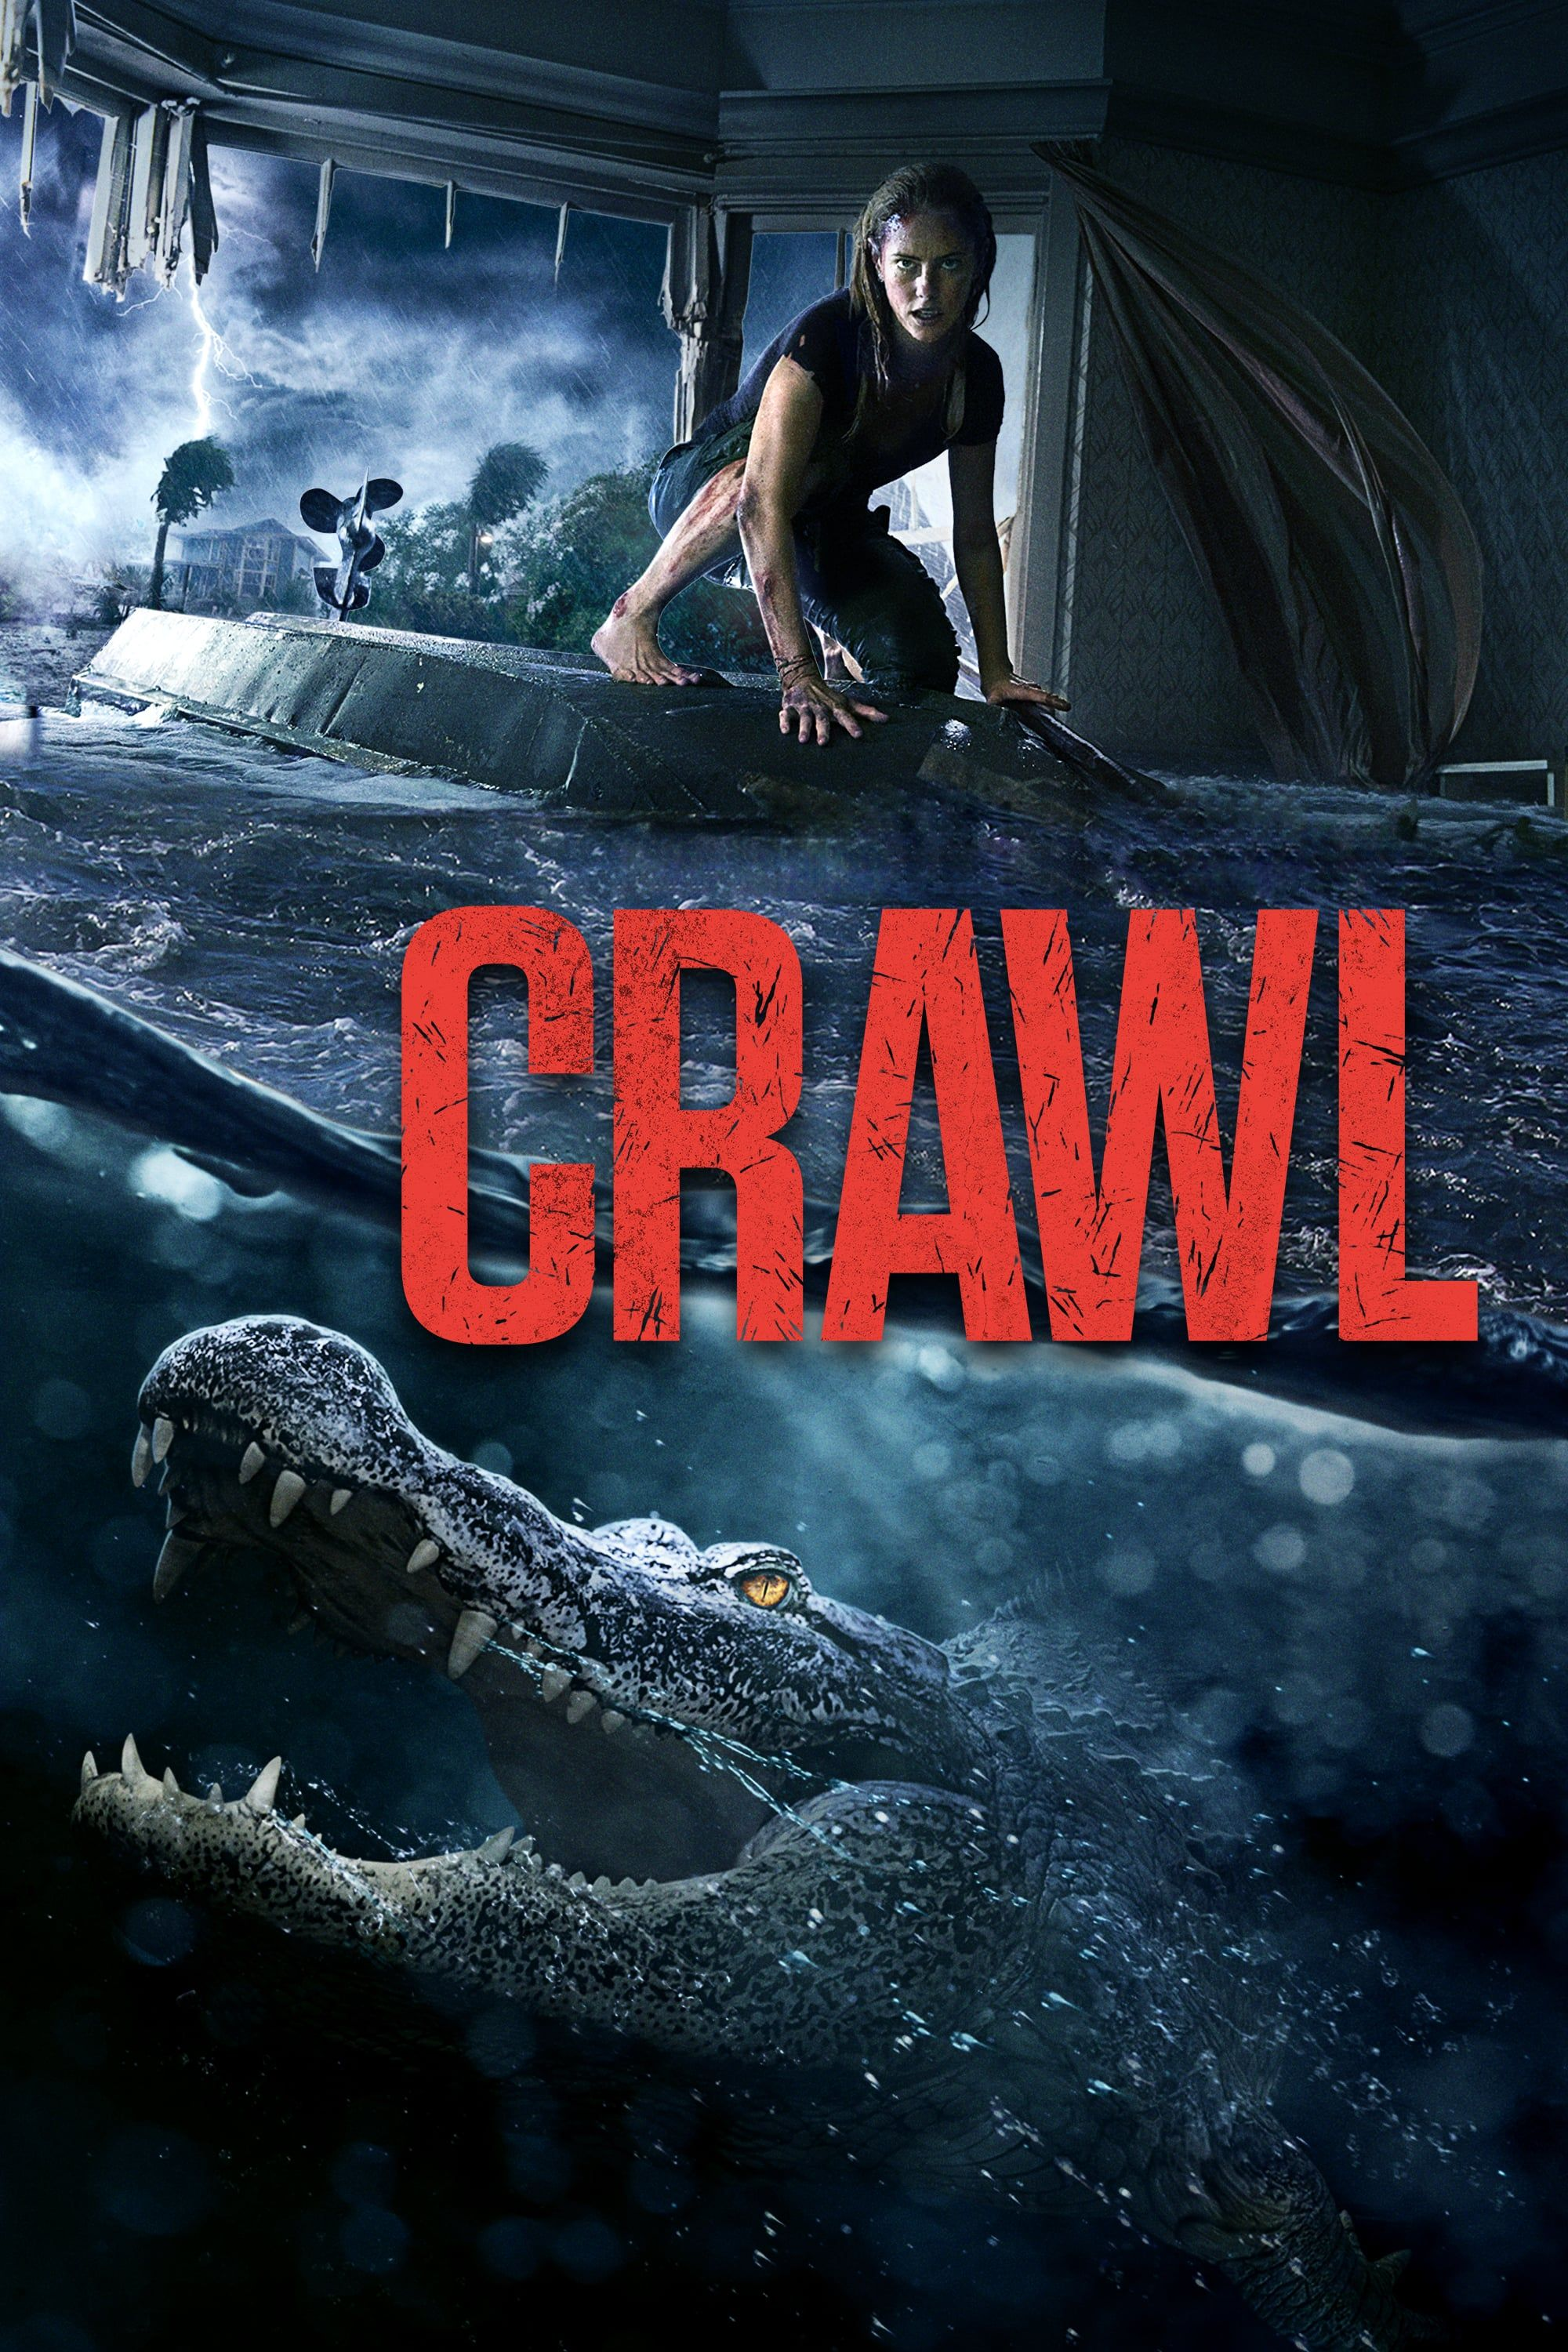 Ver Pelicula Crawl 2019 While Struggling To Keep Her Father At Some Point Of A Category Five Ty Films Complets Film Complet En Francais Film Streaming